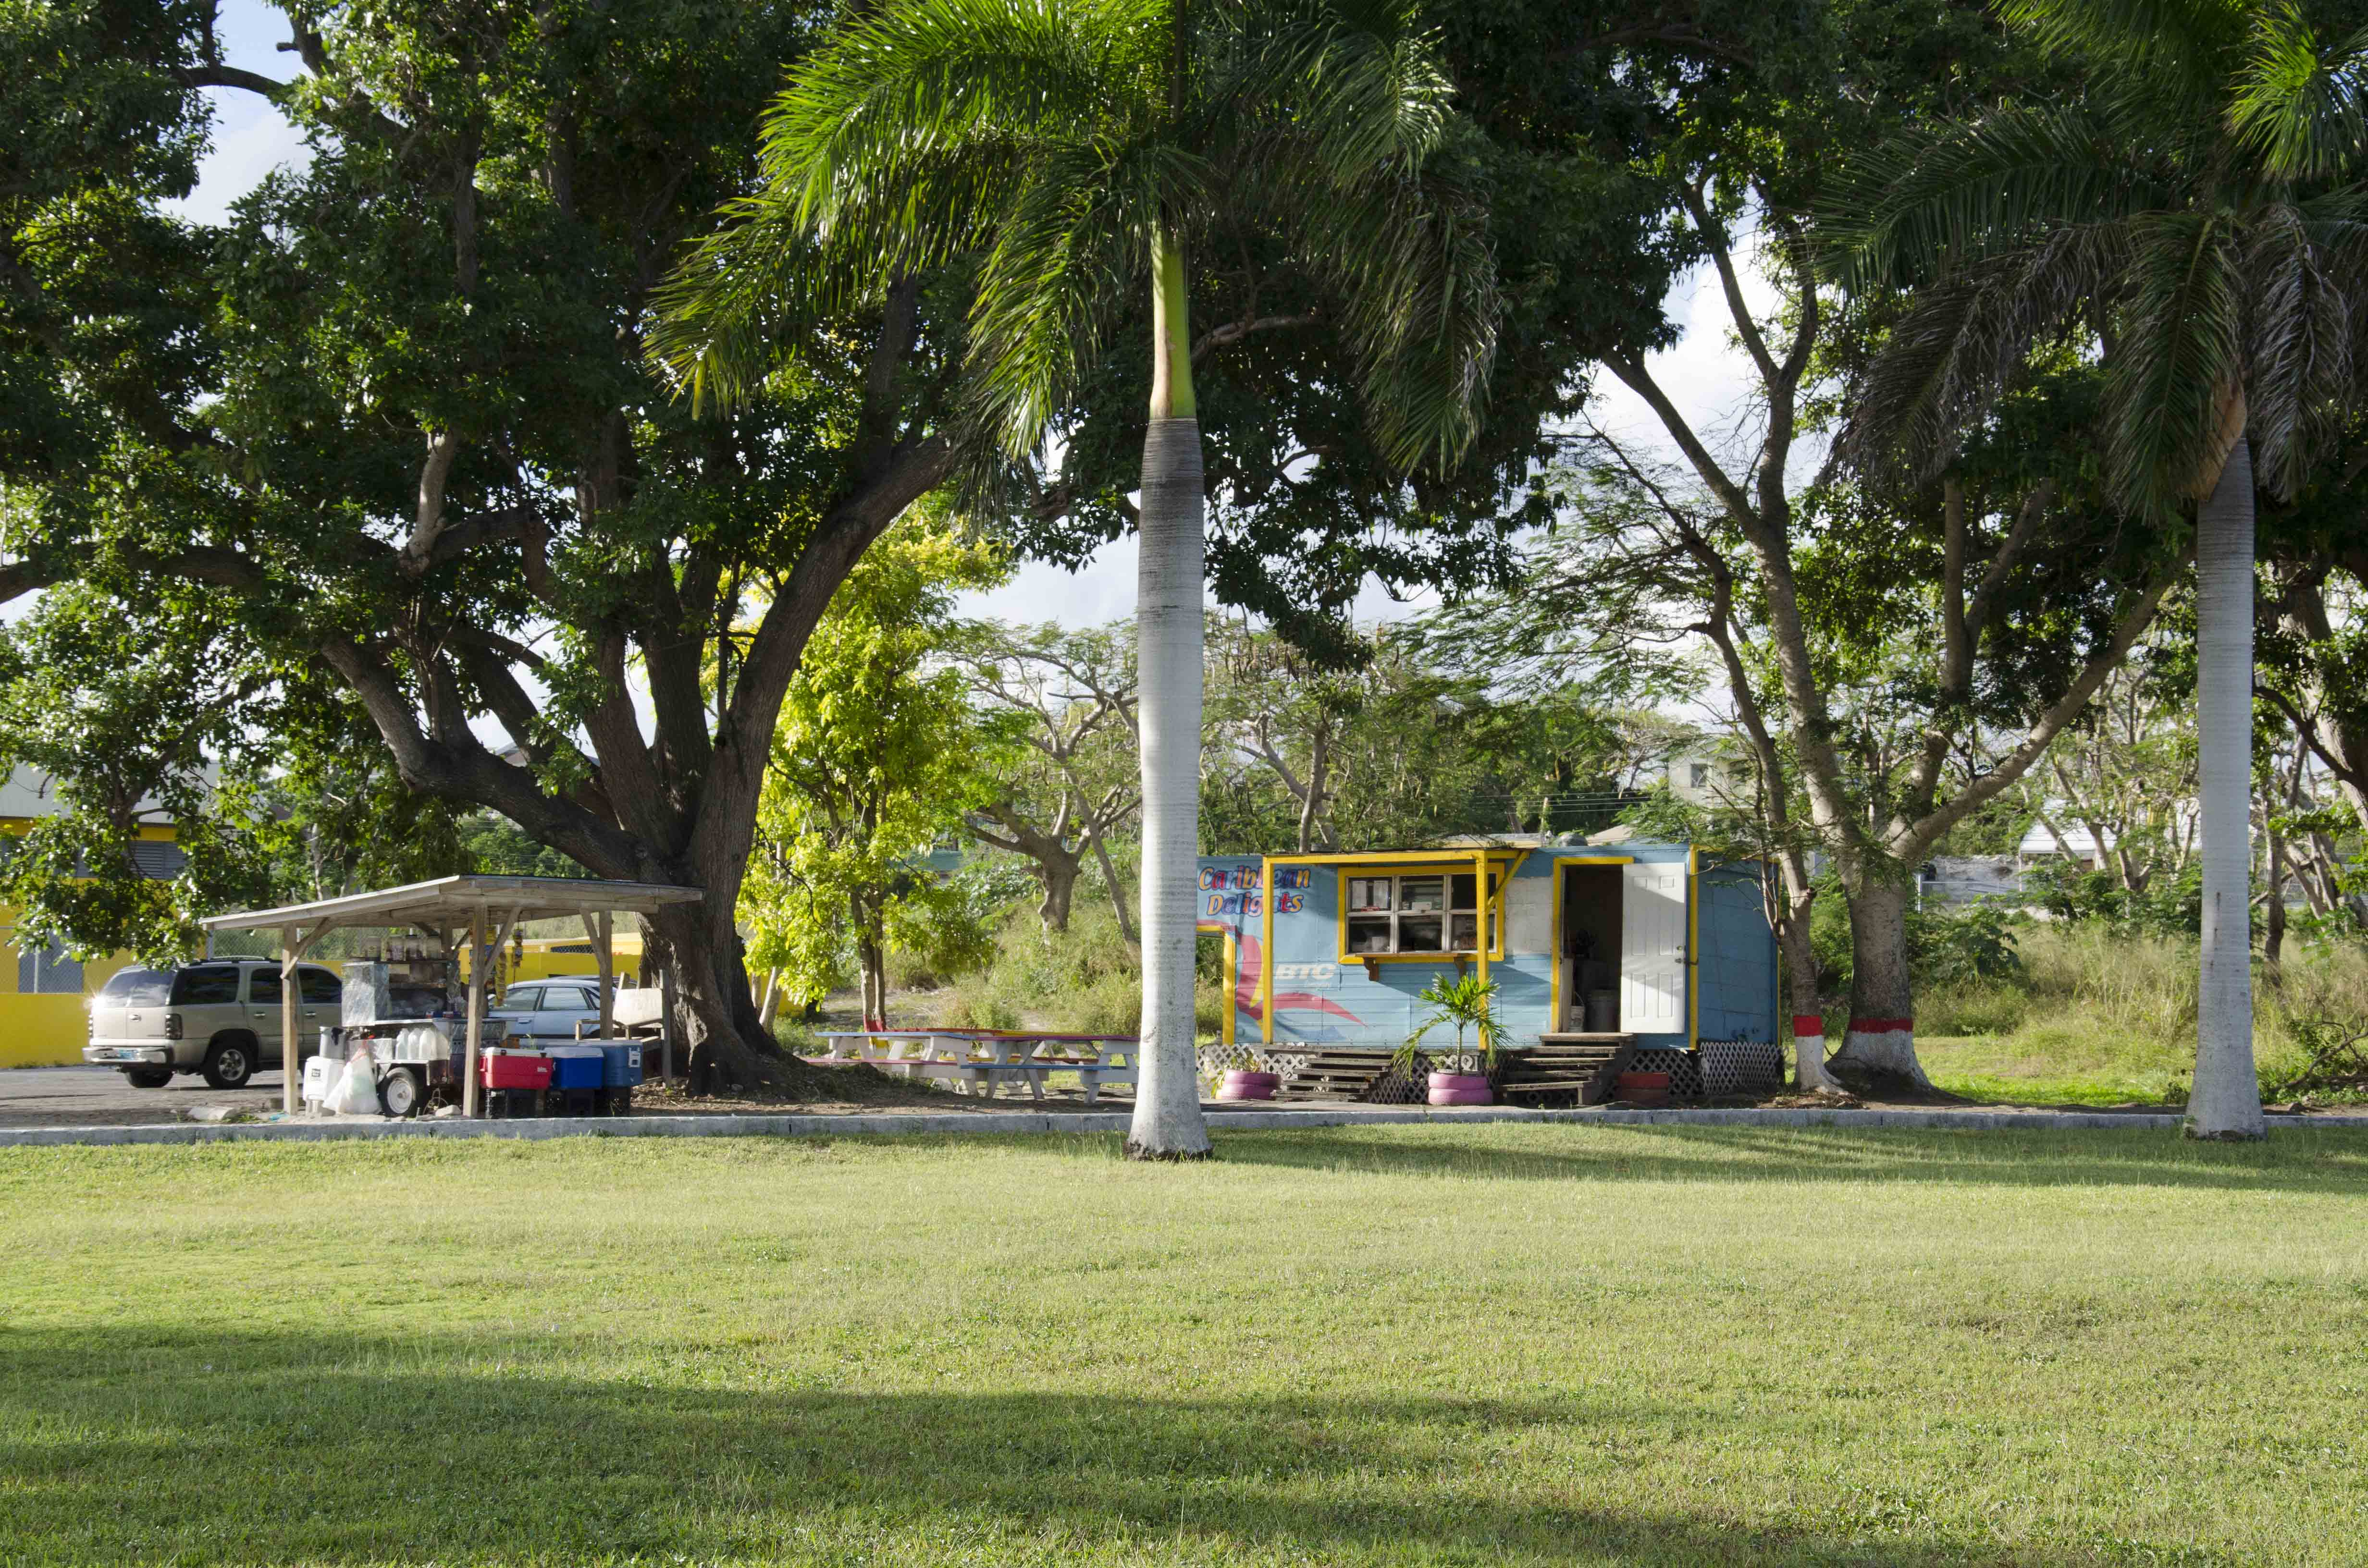 Lawn view of Thompson Blvd food stands